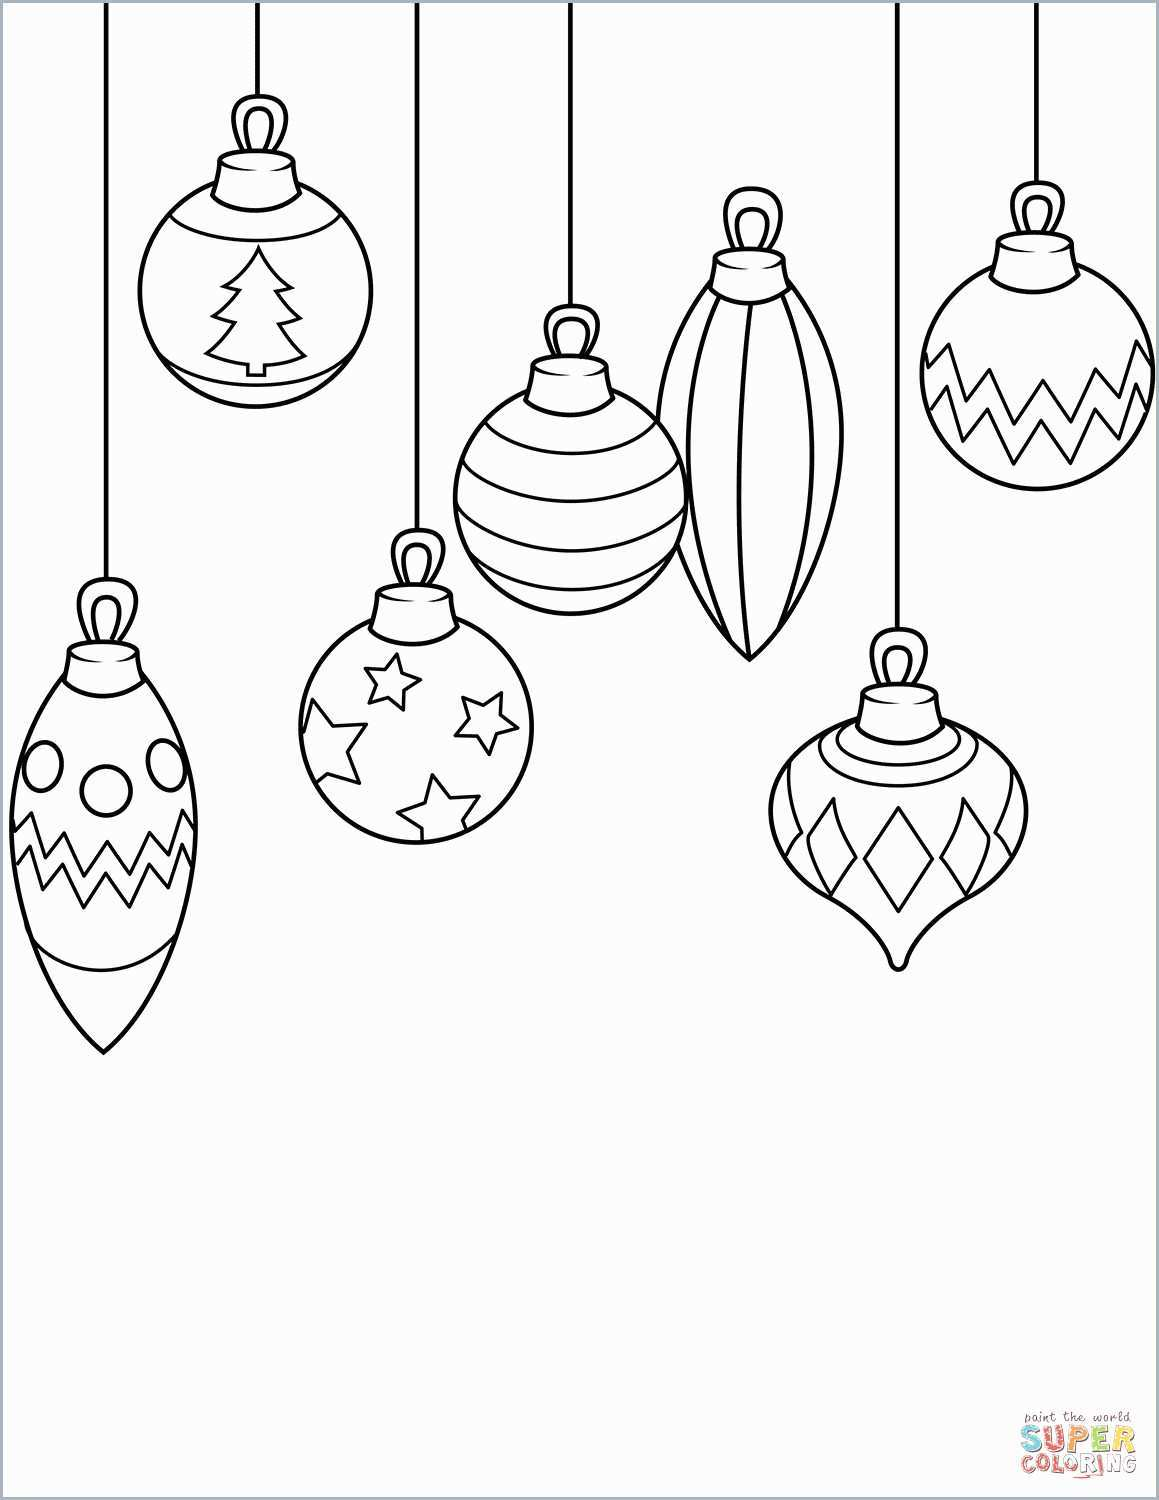 Christmas Coloring Pages Ornaments With Free Printable Ornament Fabulous